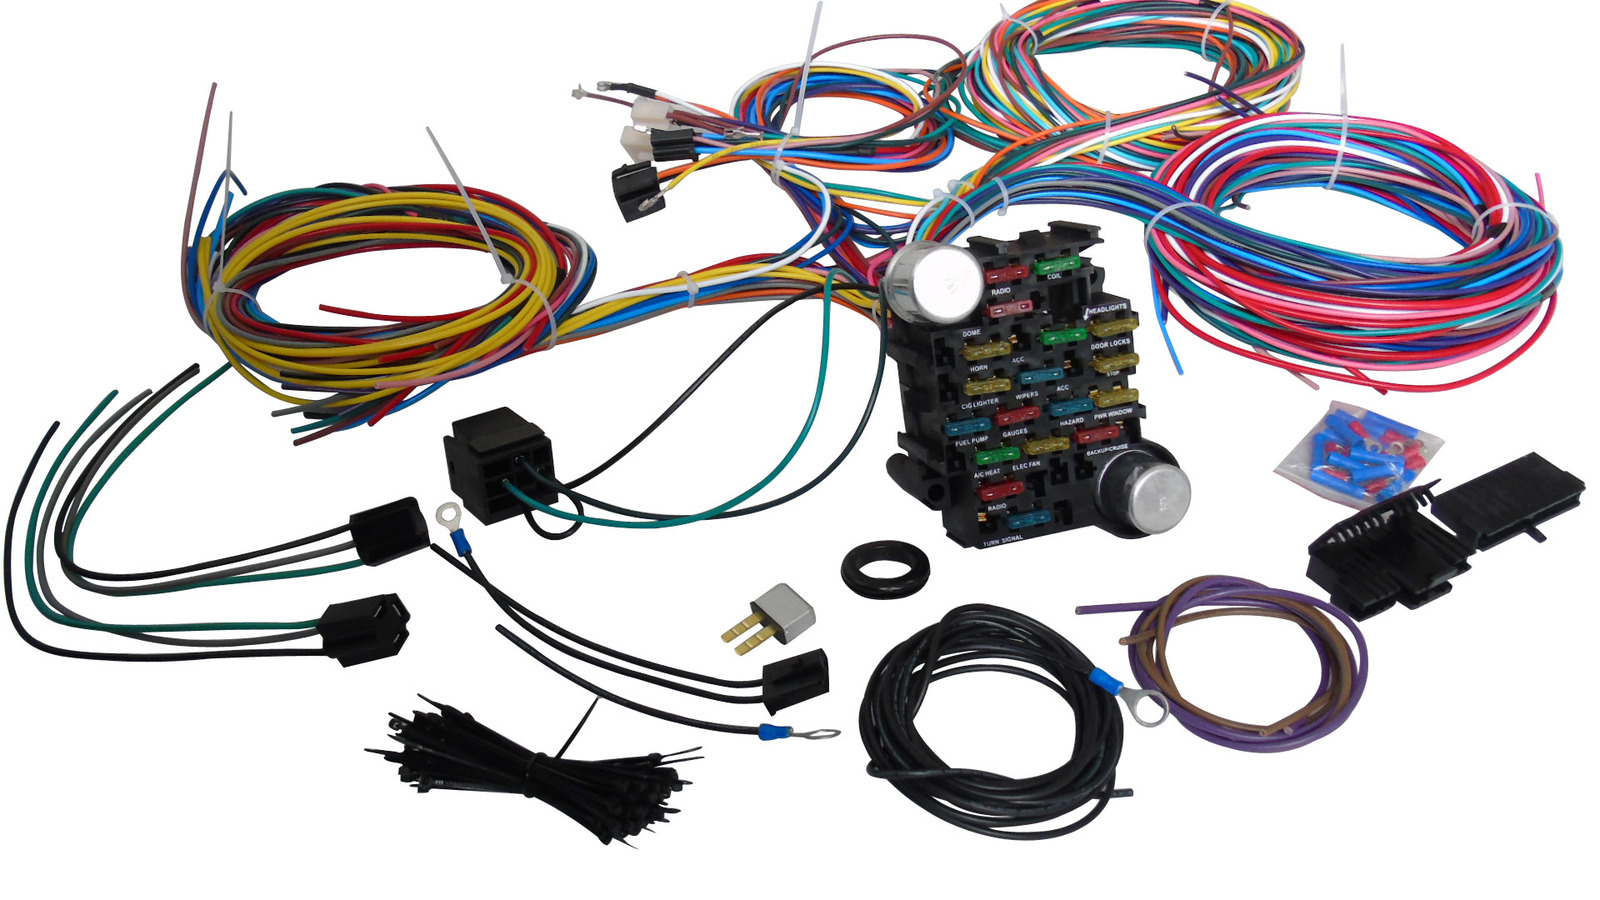 Wiring Harness Kit For 1967 Camaro Custom Diagram Rs Ss 67 81 Chevy 21 Circuit Universal Wire Xl Rh Swperformanceparts Net Pdf